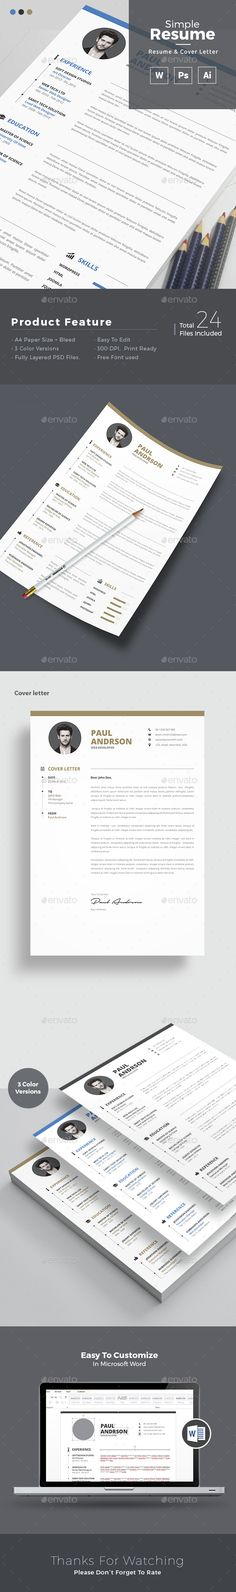 Simple Resume Template PSD, Vector AI. Download here: http://graphicriver.net/item/simple-resume/14695533?ref=ksioks